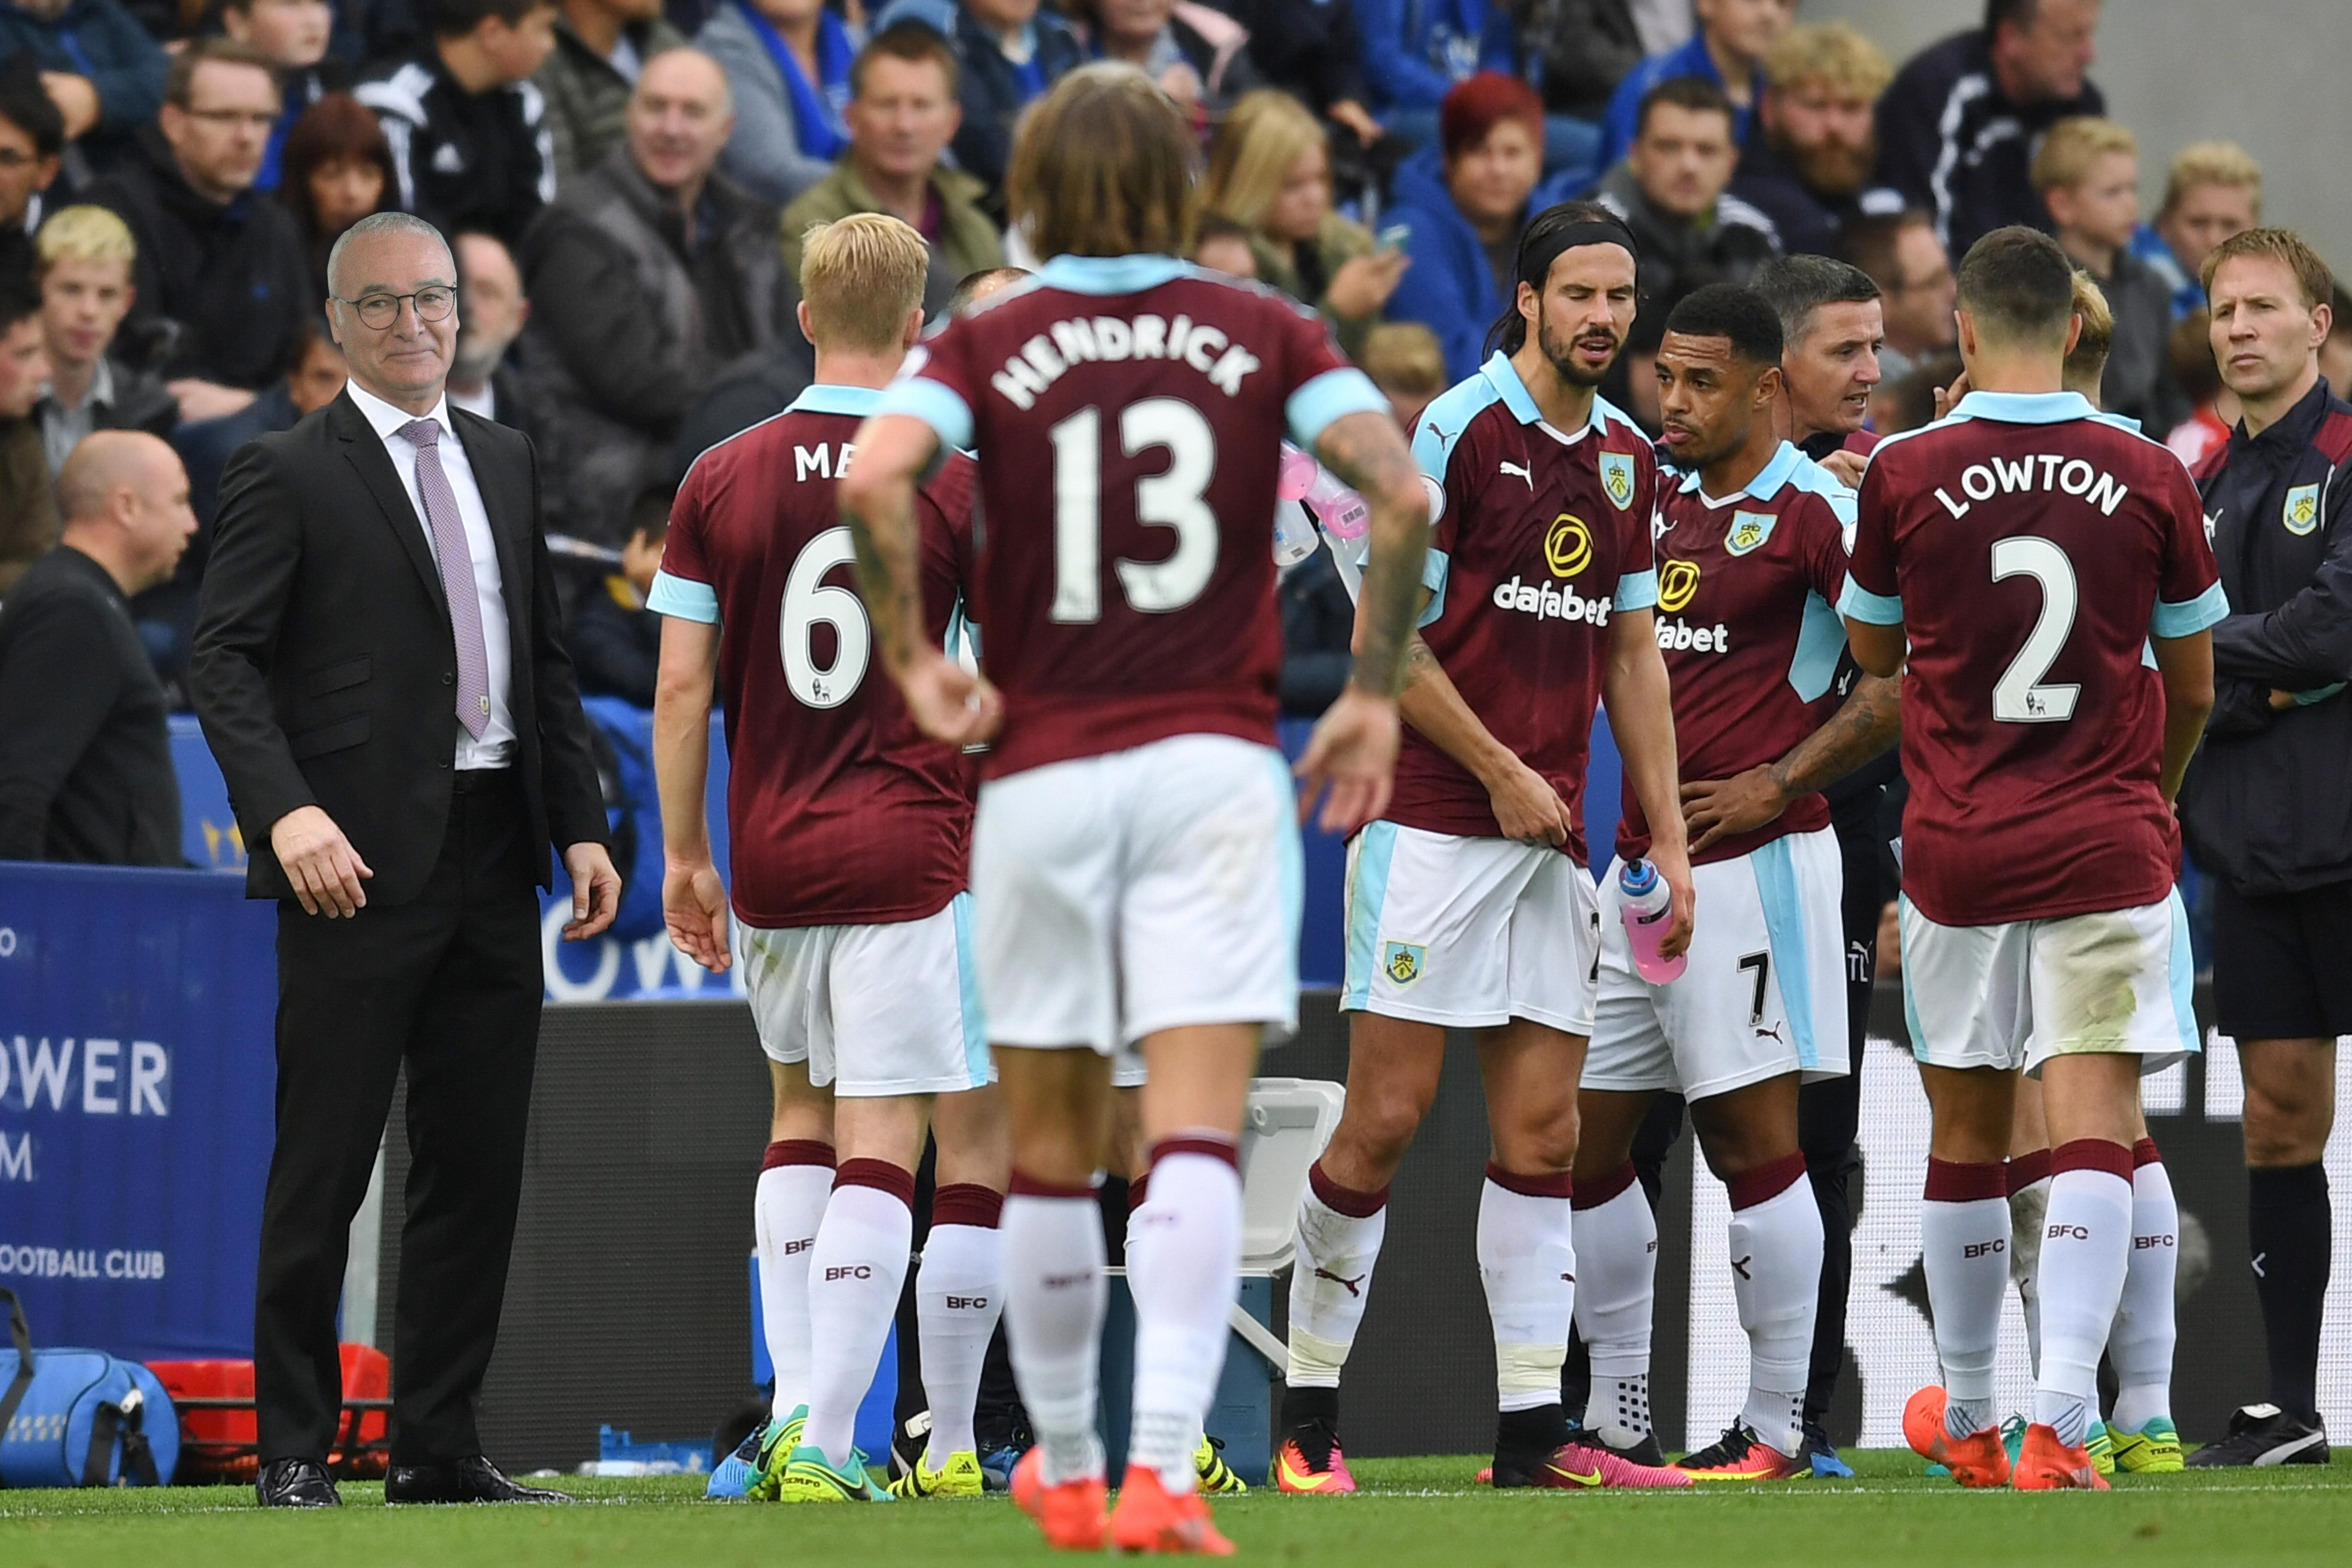 The scenes moments before Ashley Barnes breaks Jamie Vardy's consecutive goal record